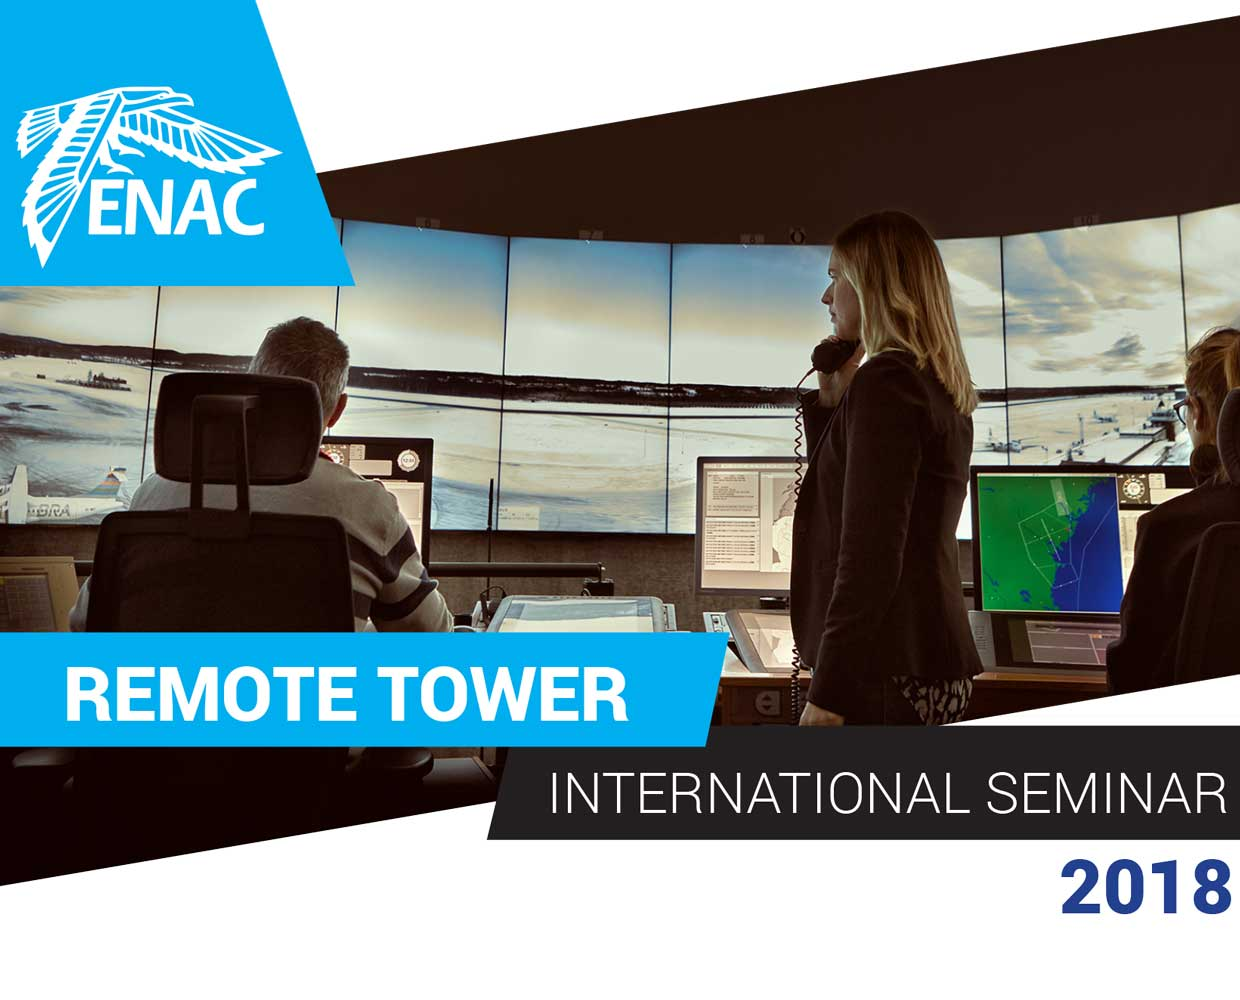 Remote Tower International Seminar